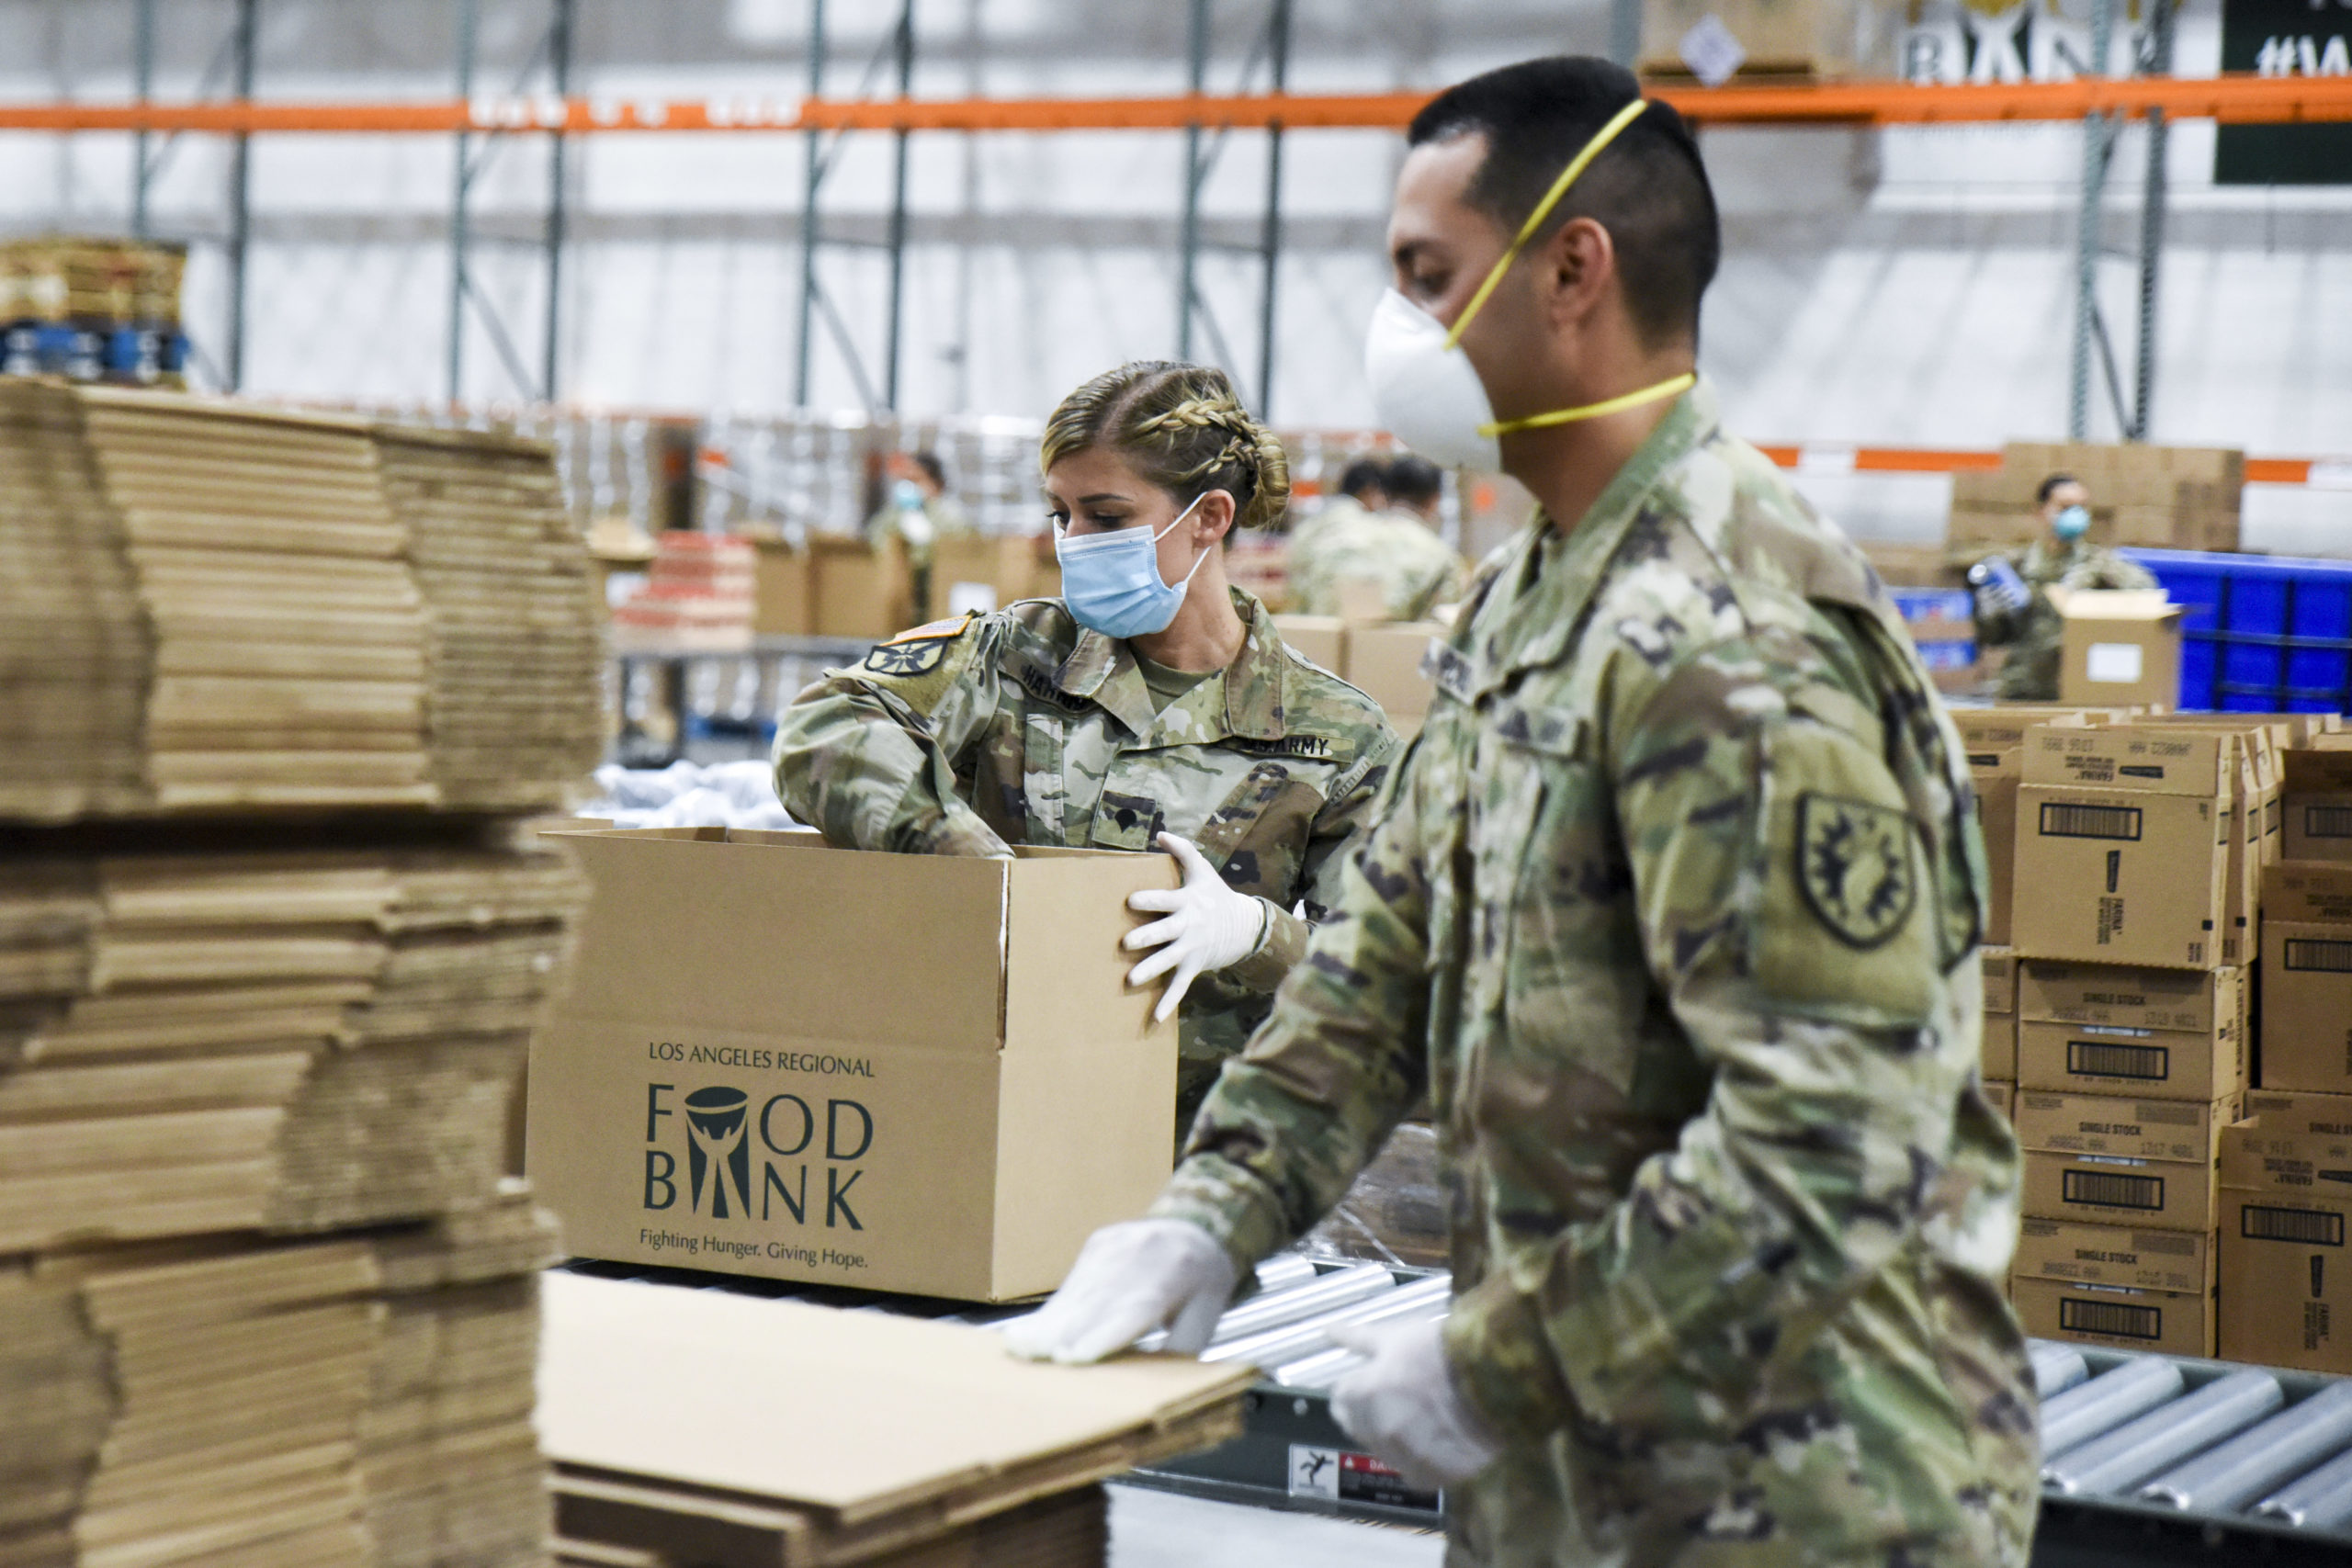 Soldiers assemble emergency kits at LA Regional Food Bank